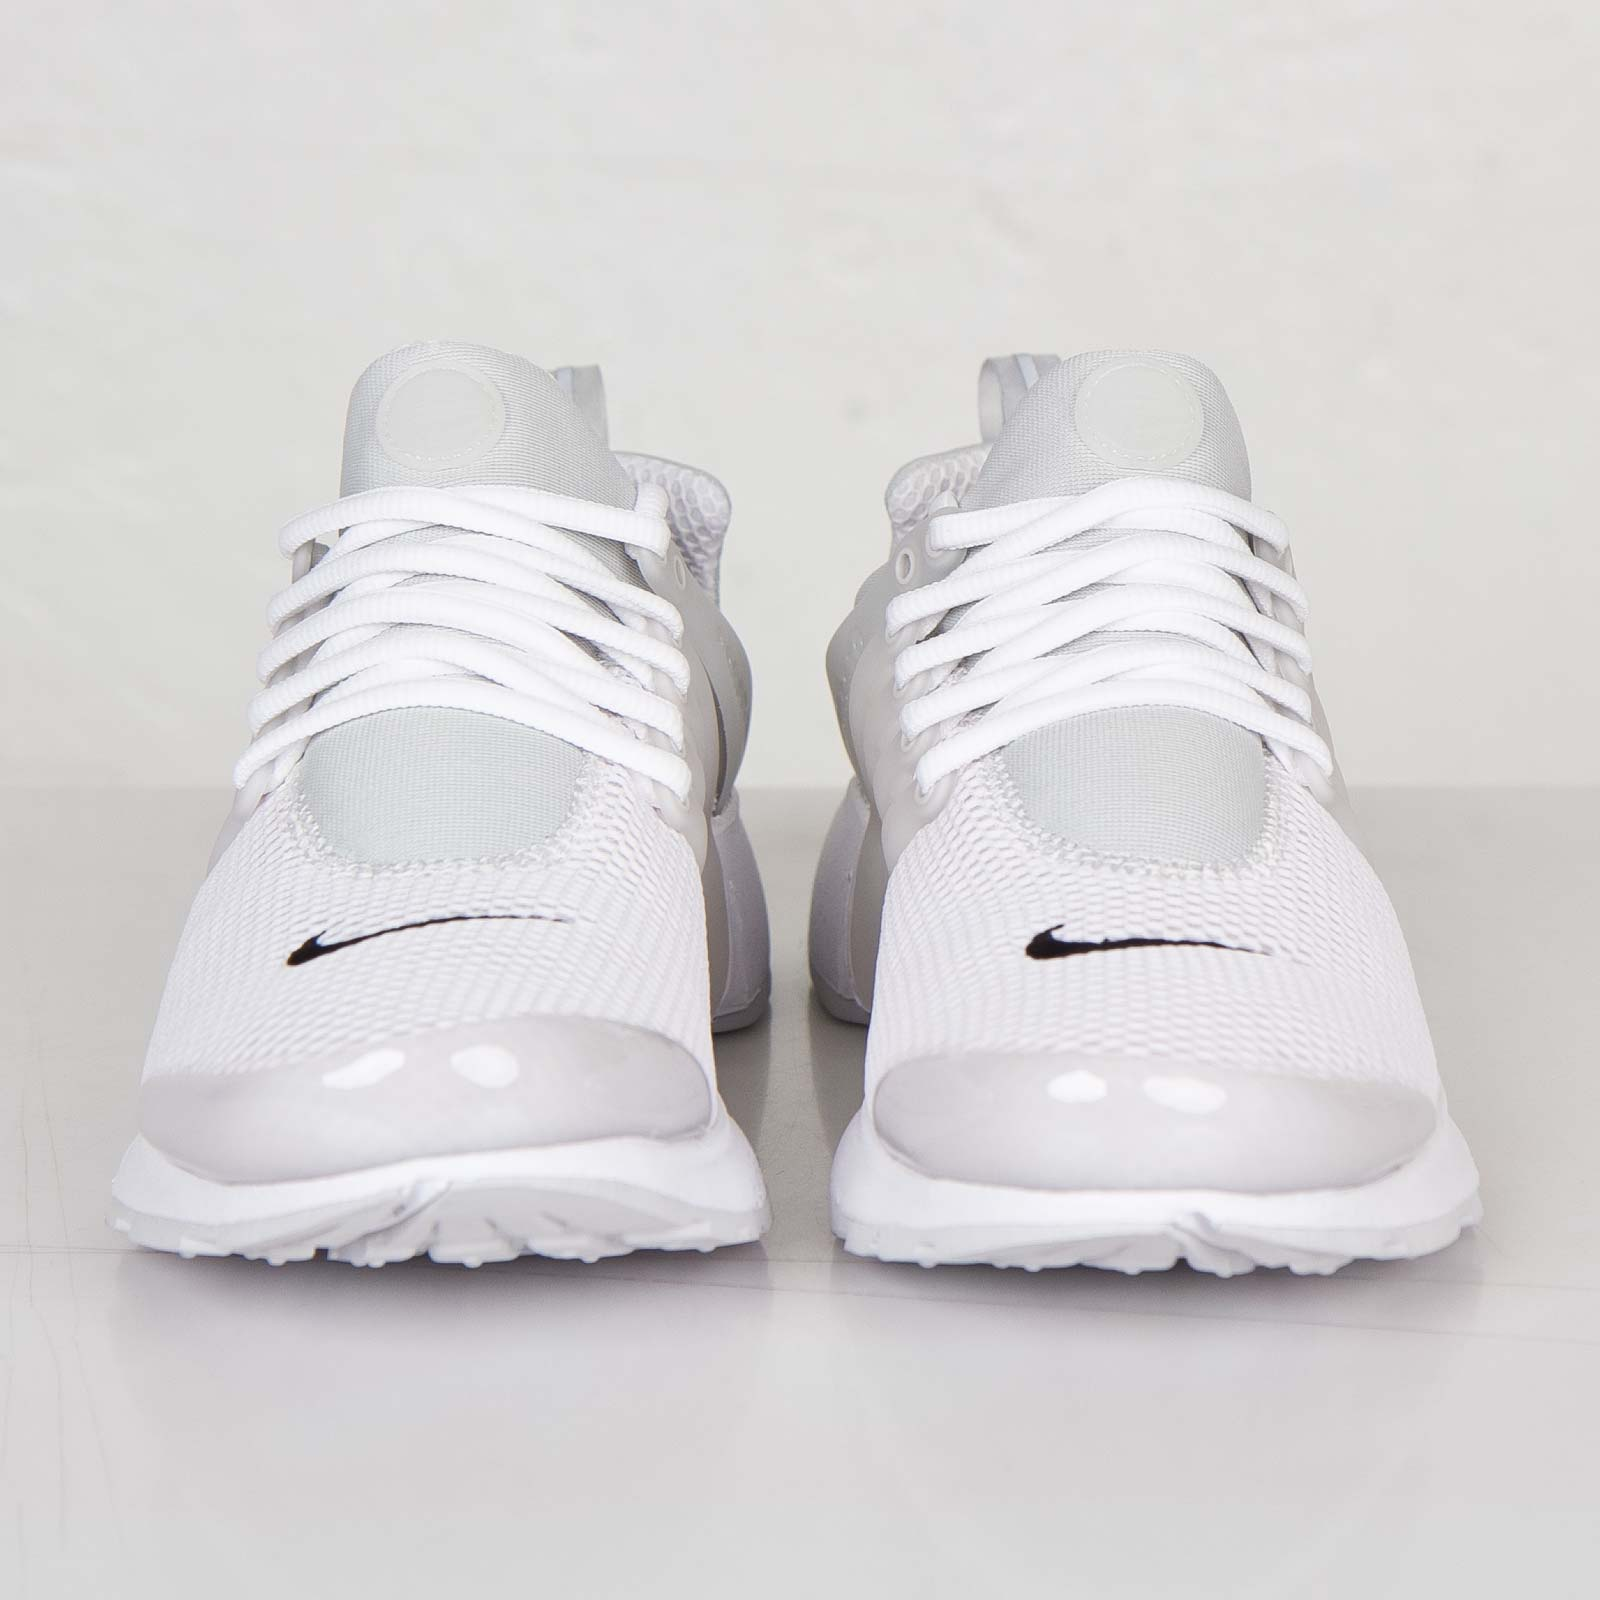 pre order excellent quality top brands Nike Air Presto Br QS - 789869-100 - Sneakersnstuff ...